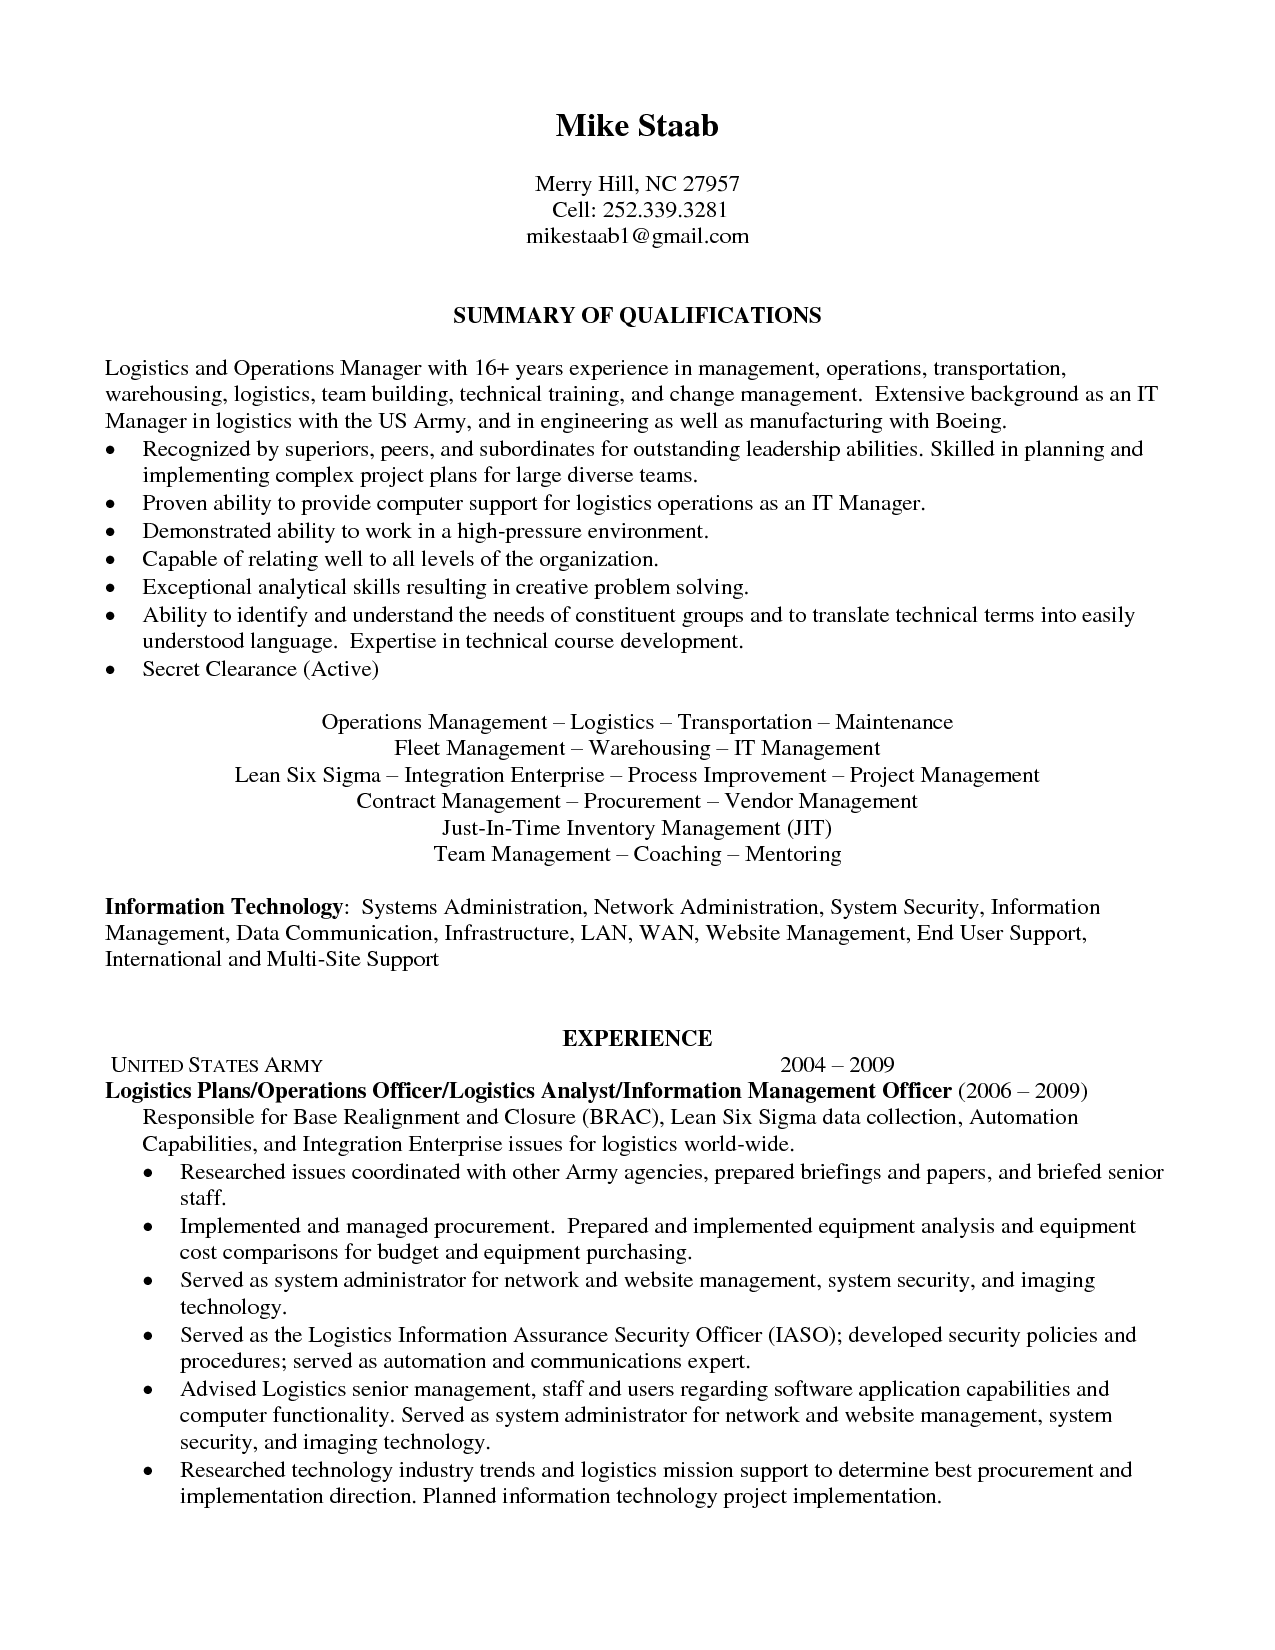 resume operations logistics manager raleigh mike staab builder word cover letter free best free home design idea inspiration - Military Resume Builder Free